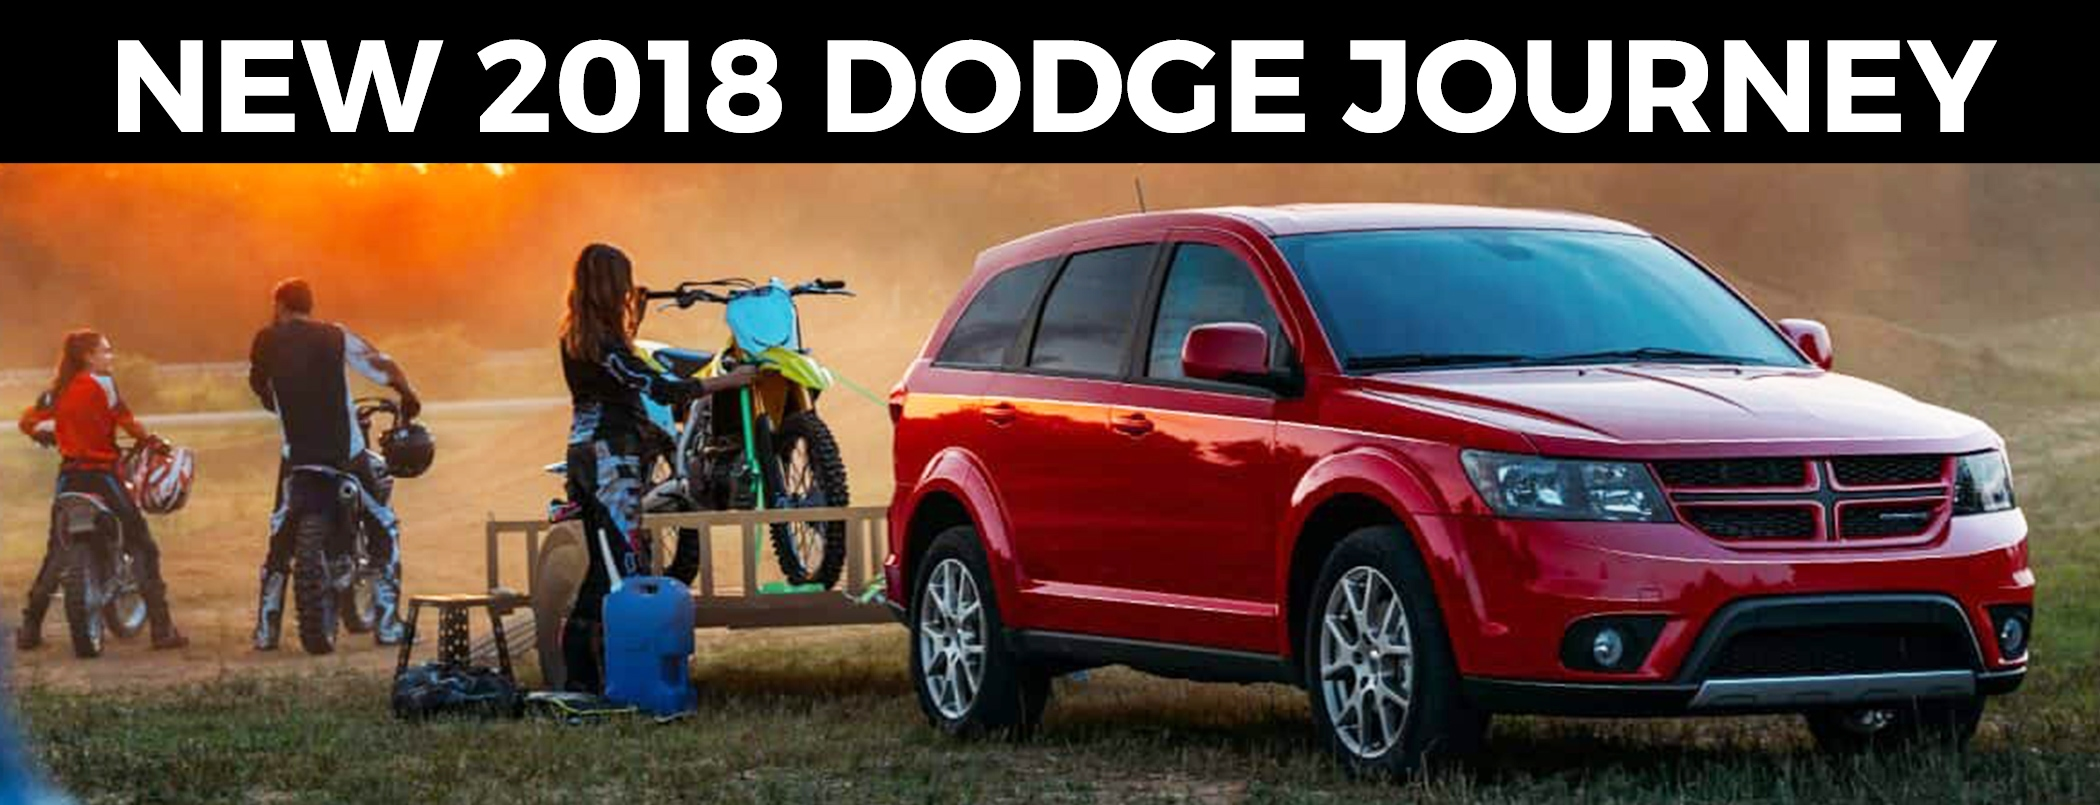 2018 Dodge Journey Review Sandy